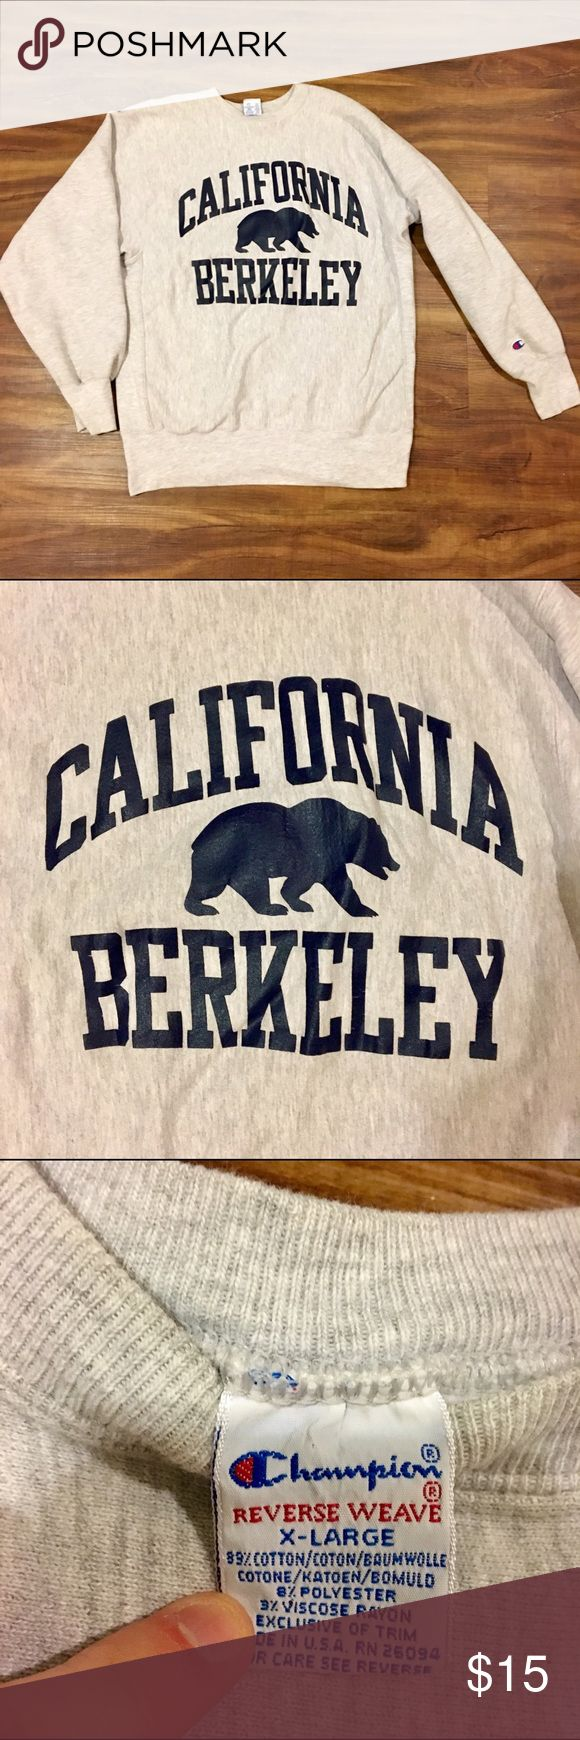 California Berkeley pullover California Berkeley pull over. Super cozy vintage champion brand. Size extra large but would fit a medium or large as oversized. Small pink stain on sleeve. Oatmeal (cream/gray) color Champion Sweaters